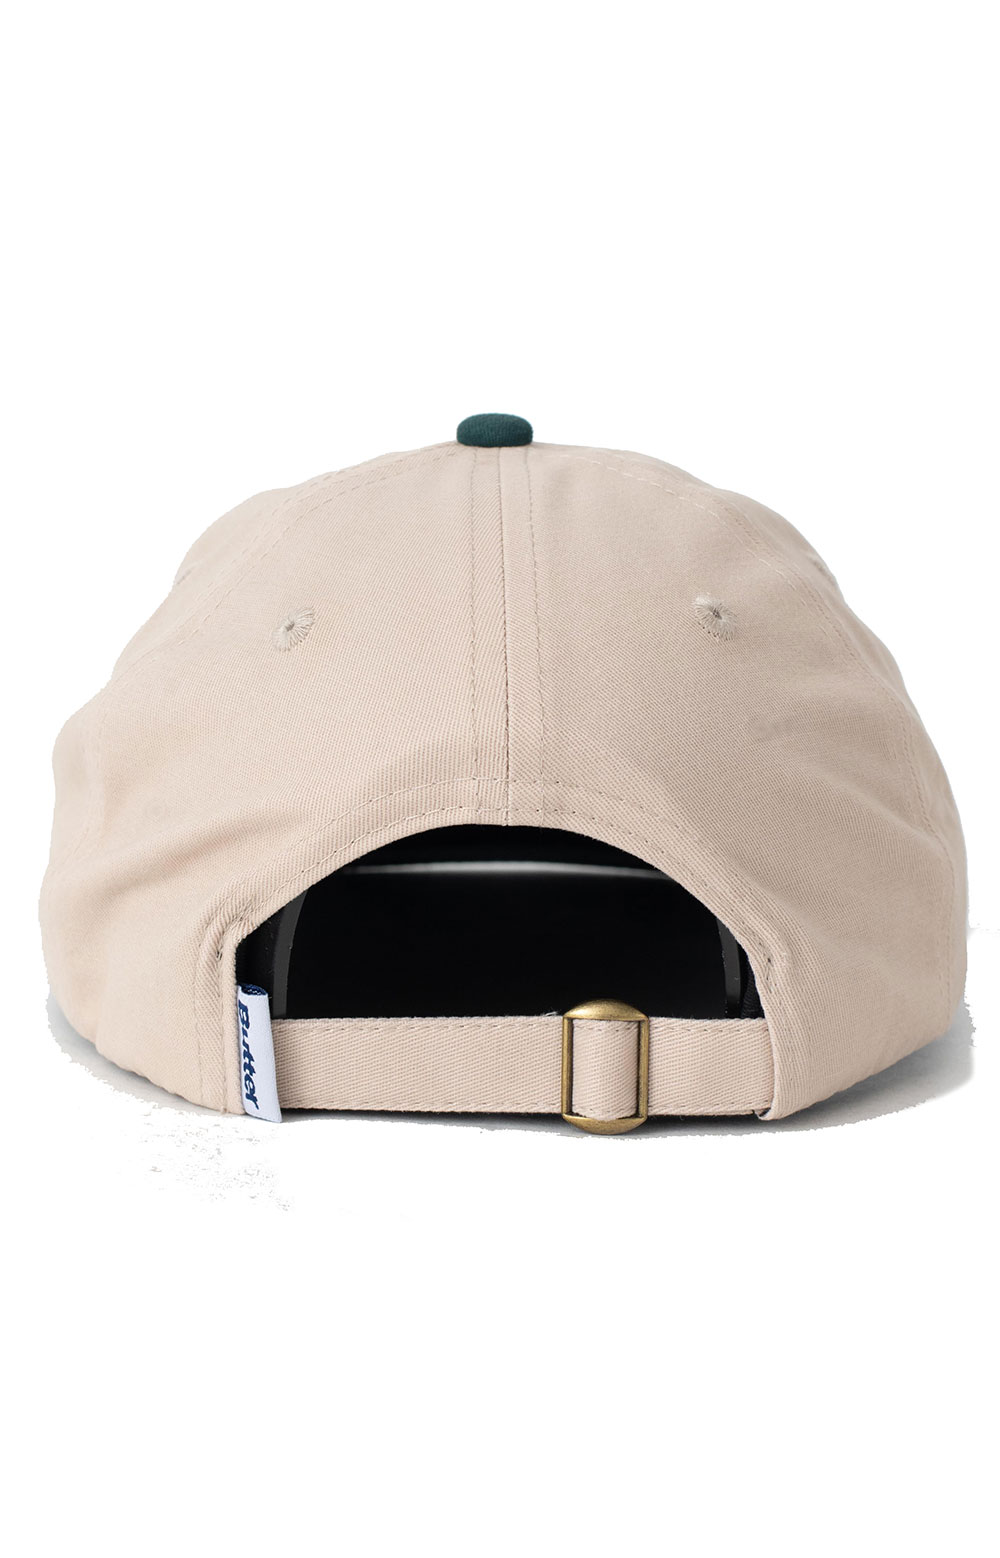 Sunflower 6 Panel Hat - Natural/Forest  3